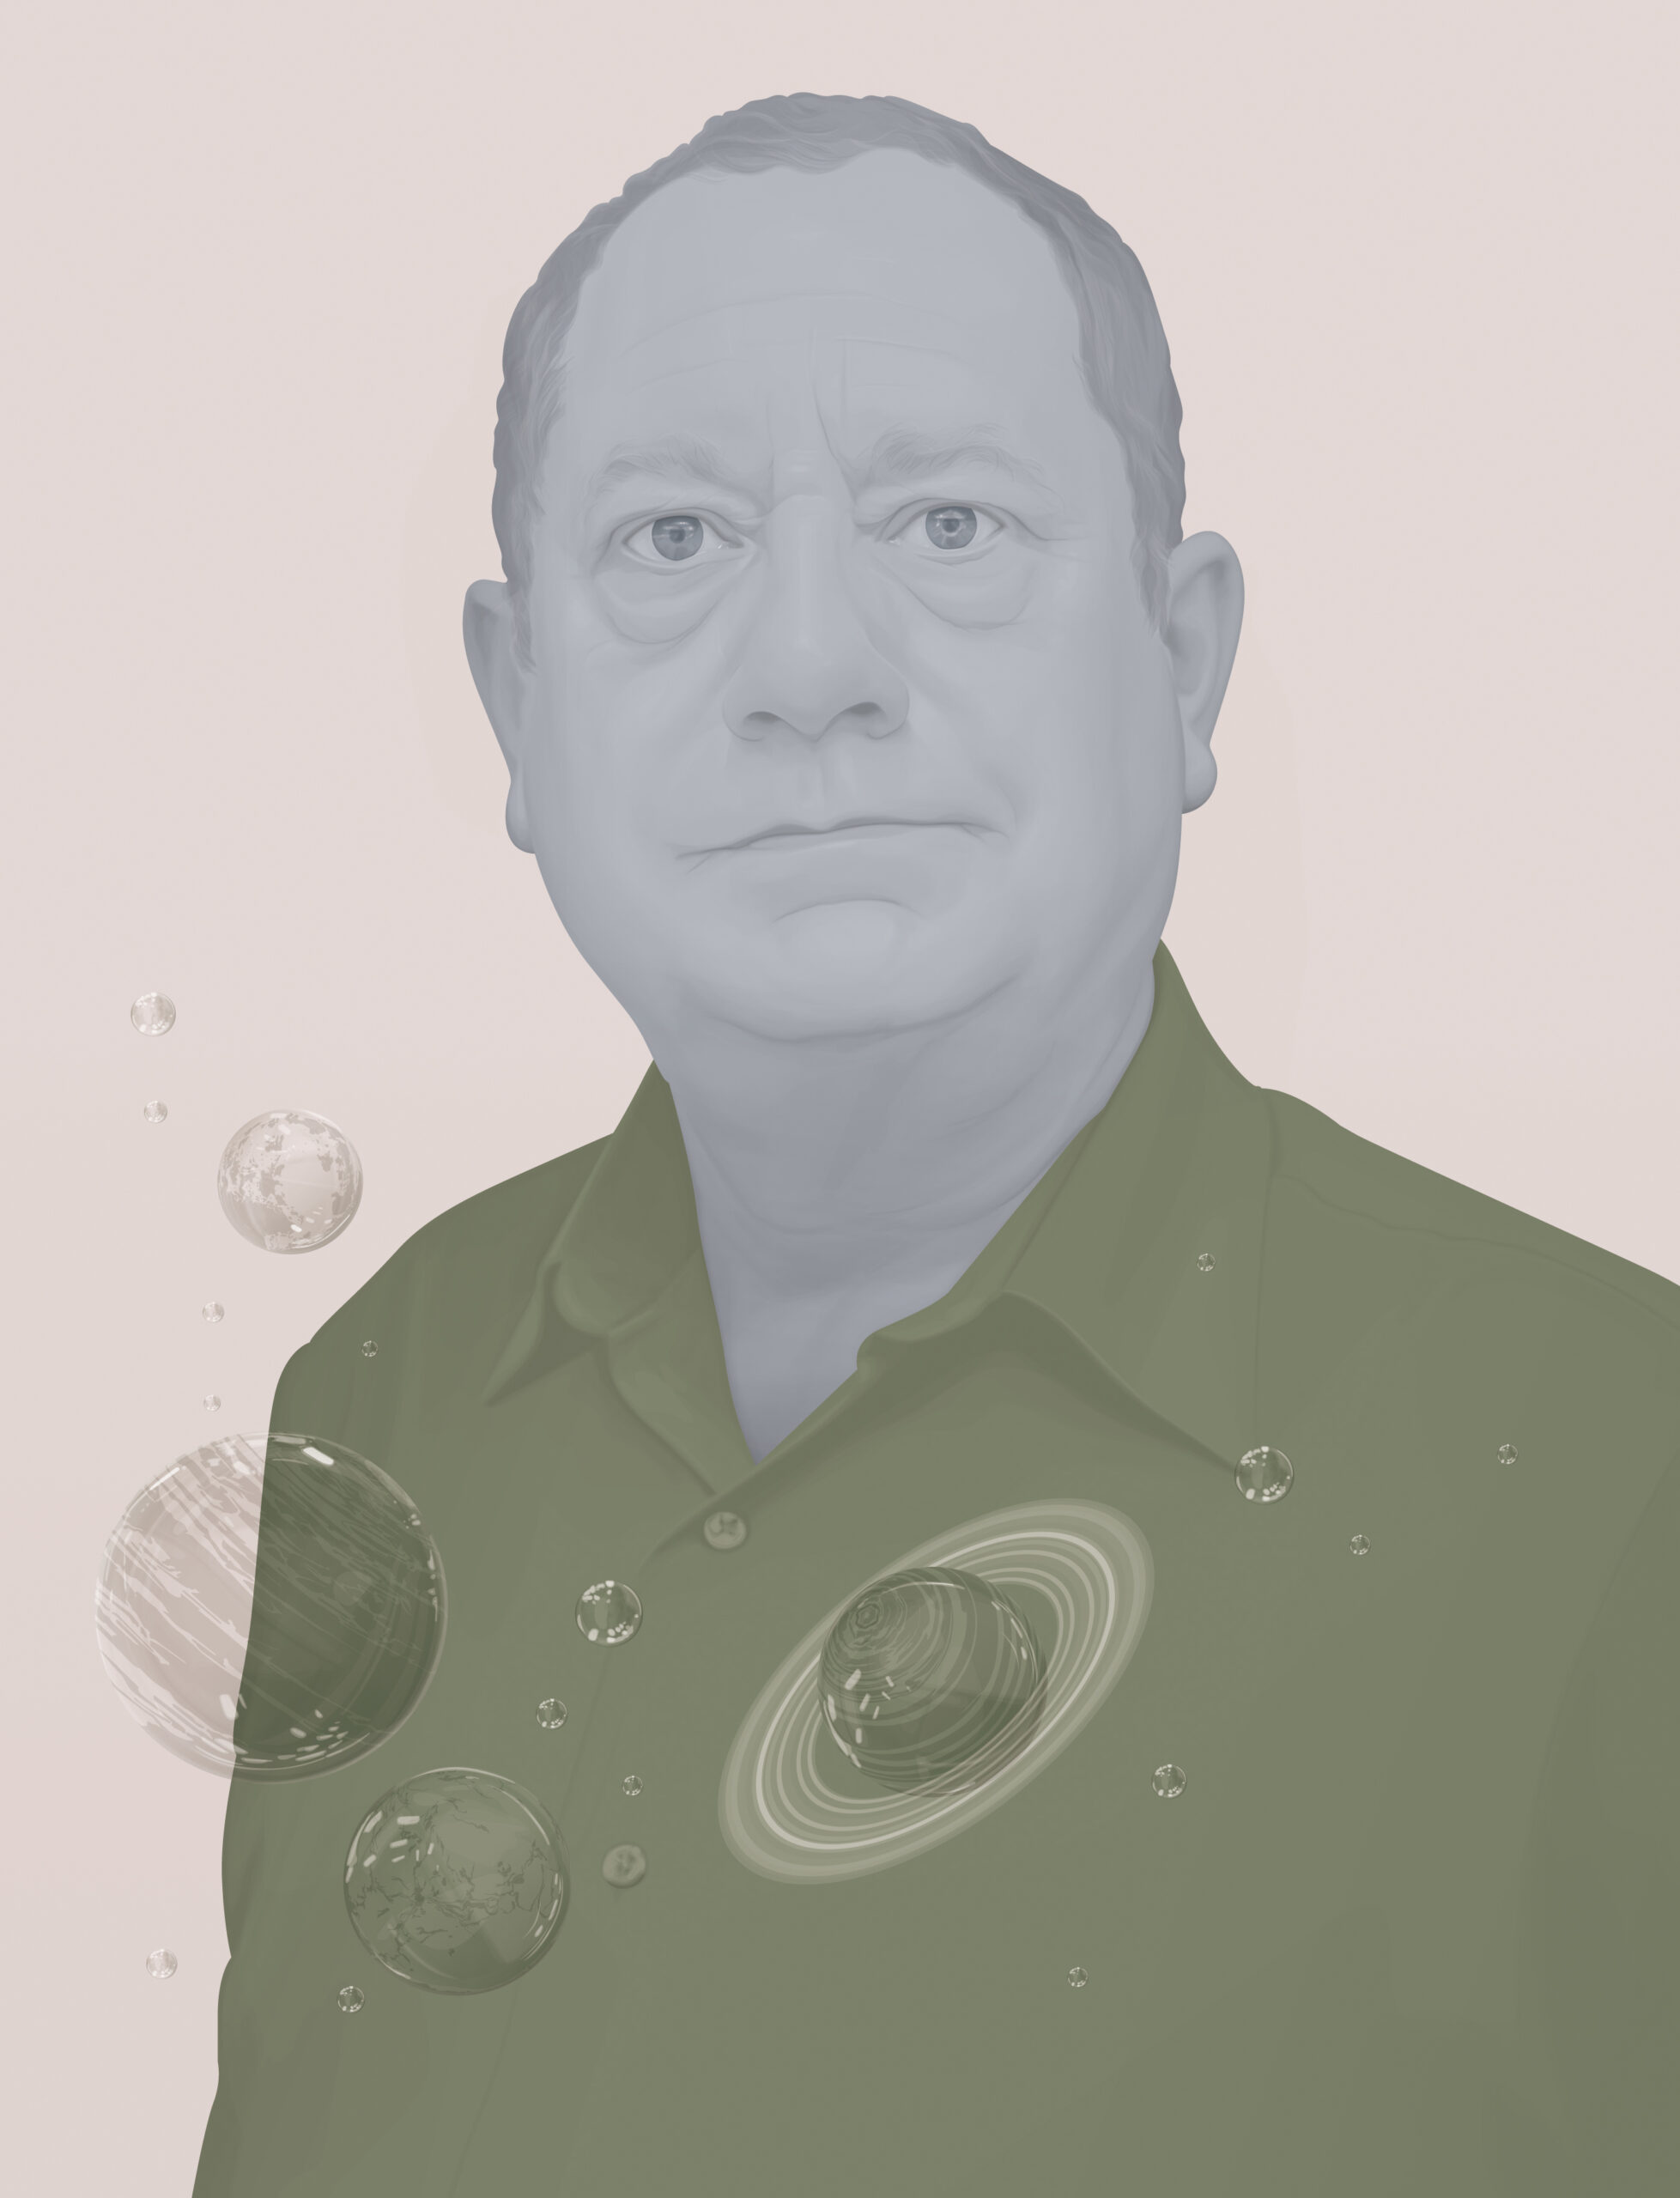 Illustration depicting Texas A&M astronomer Robert Kennicutt in RGB tones with a planetary overlay at bottom left of the frame